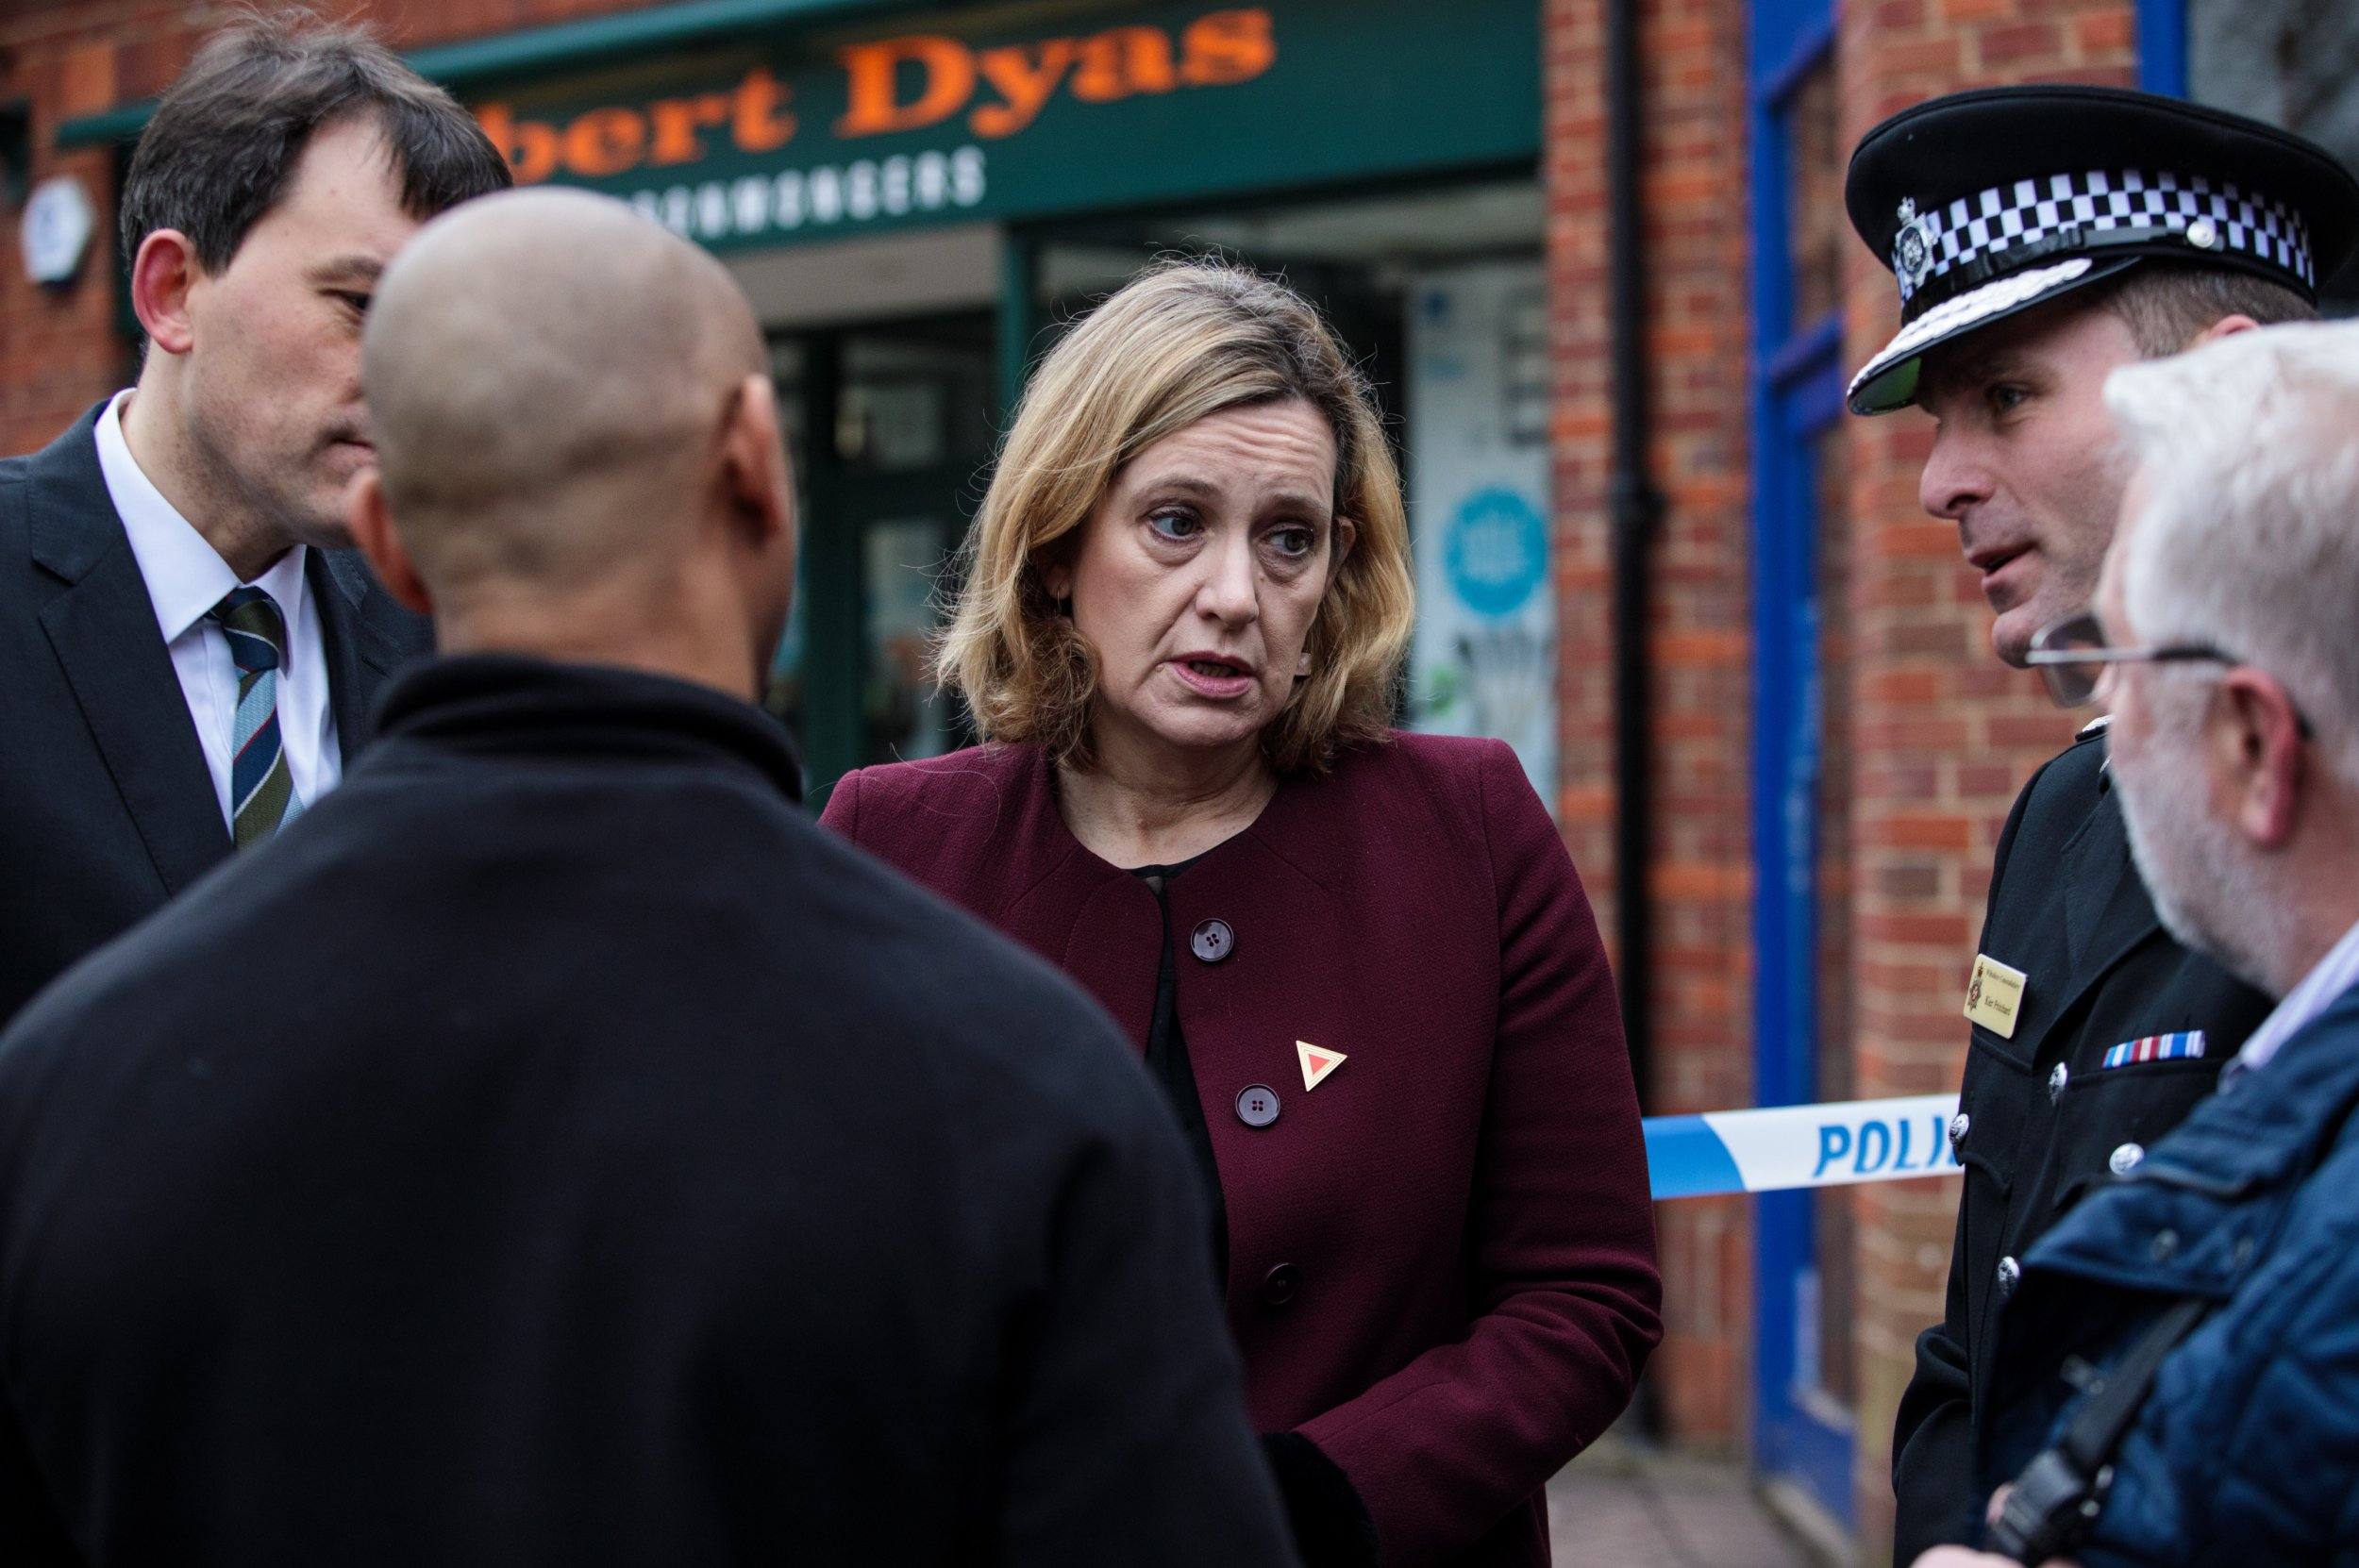 Amber Rudd blames social media for rise in murders instead of huge cuts to police